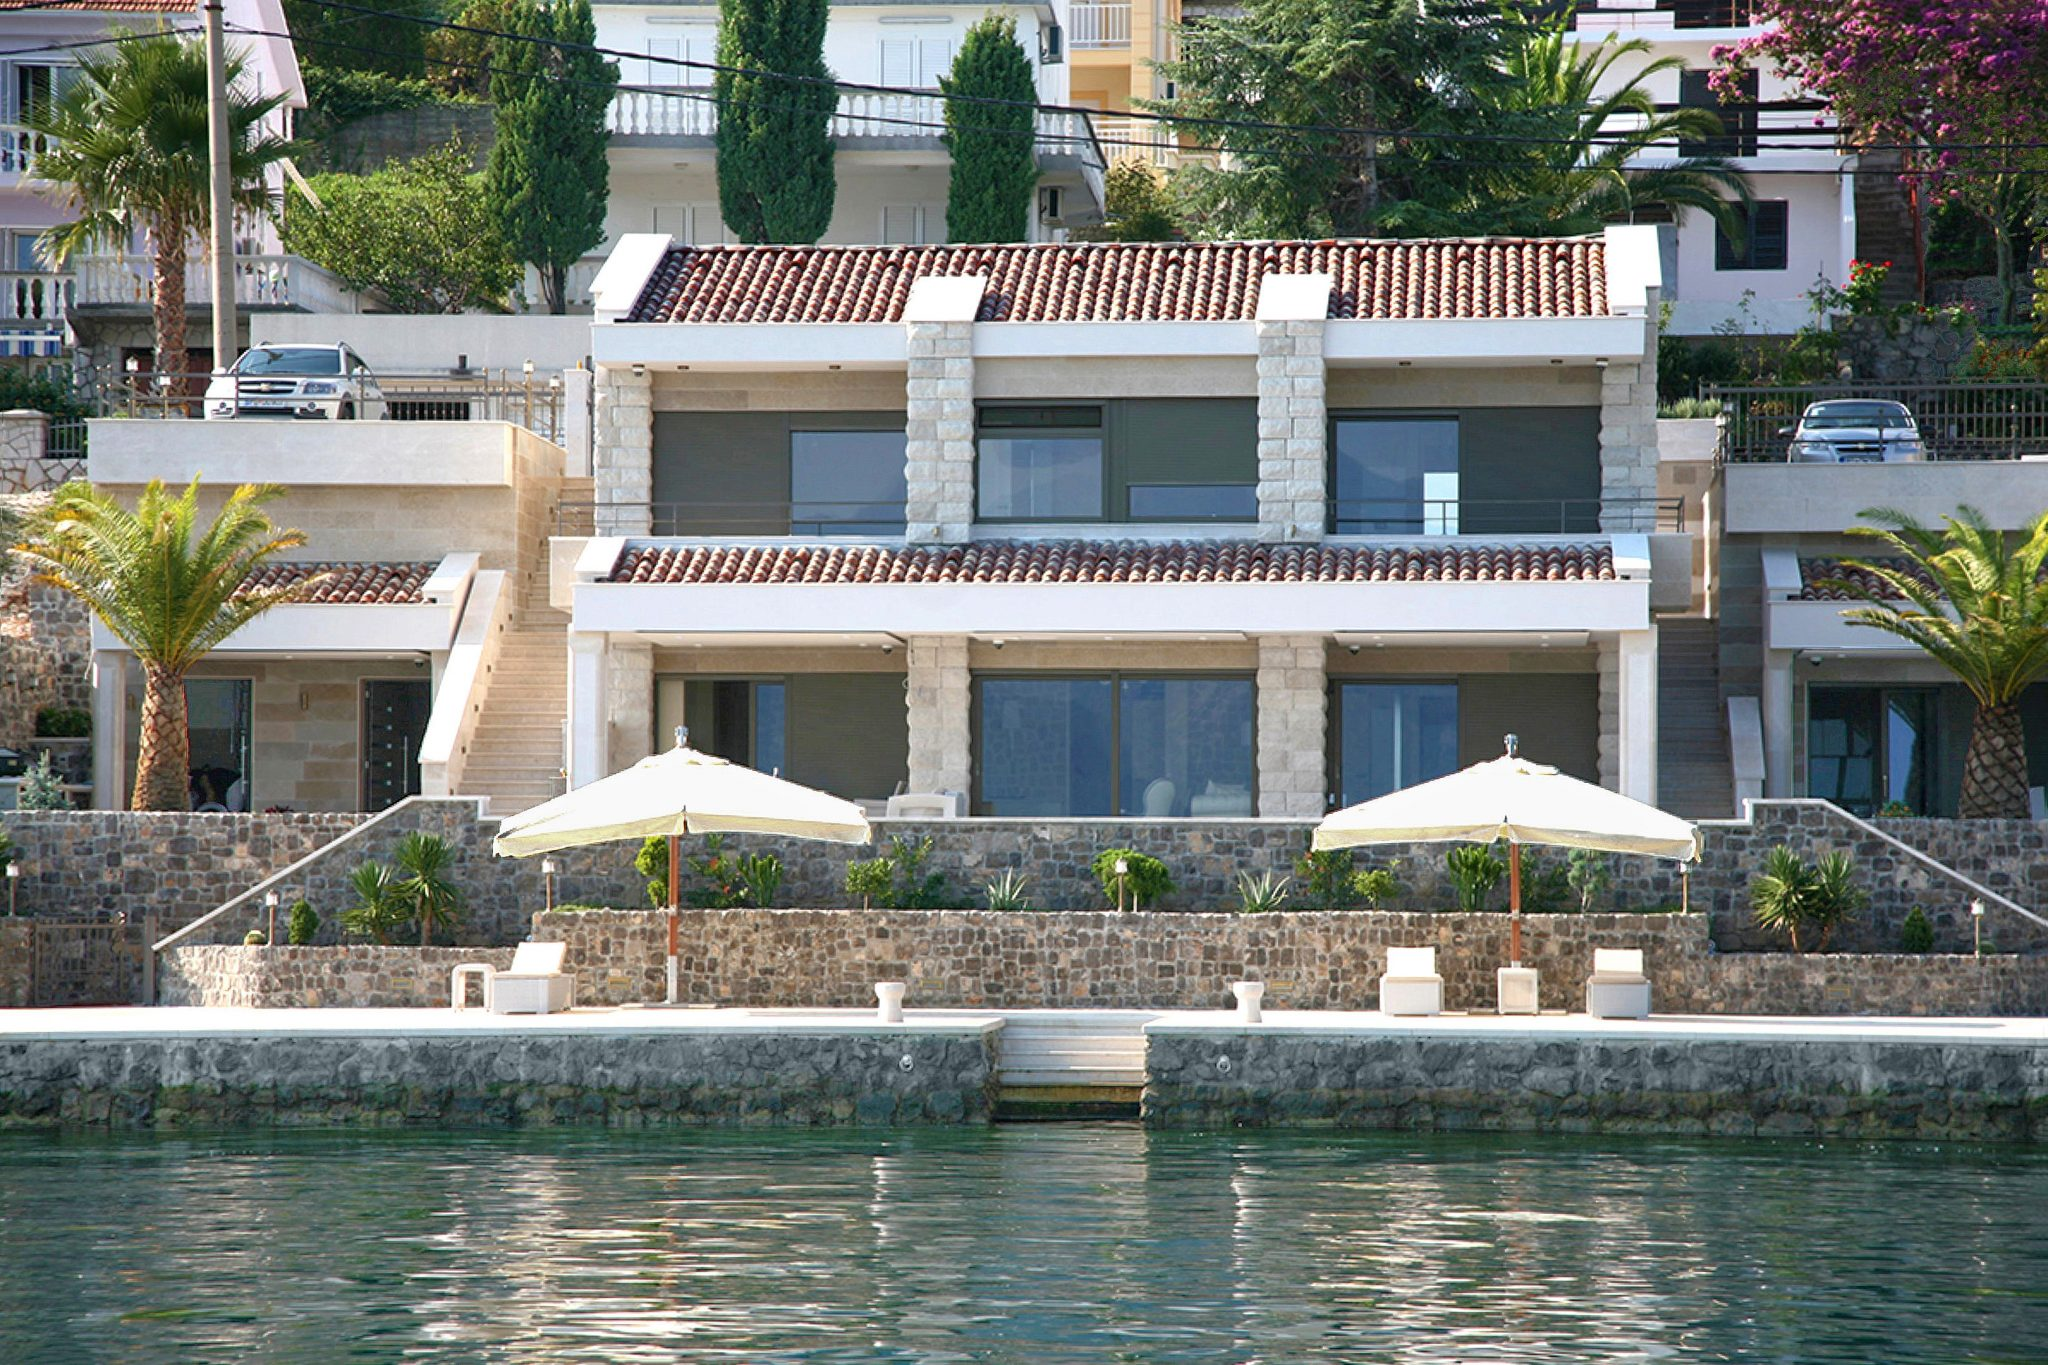 Tivat, Krasici – seafront villa with a pier for two yachts